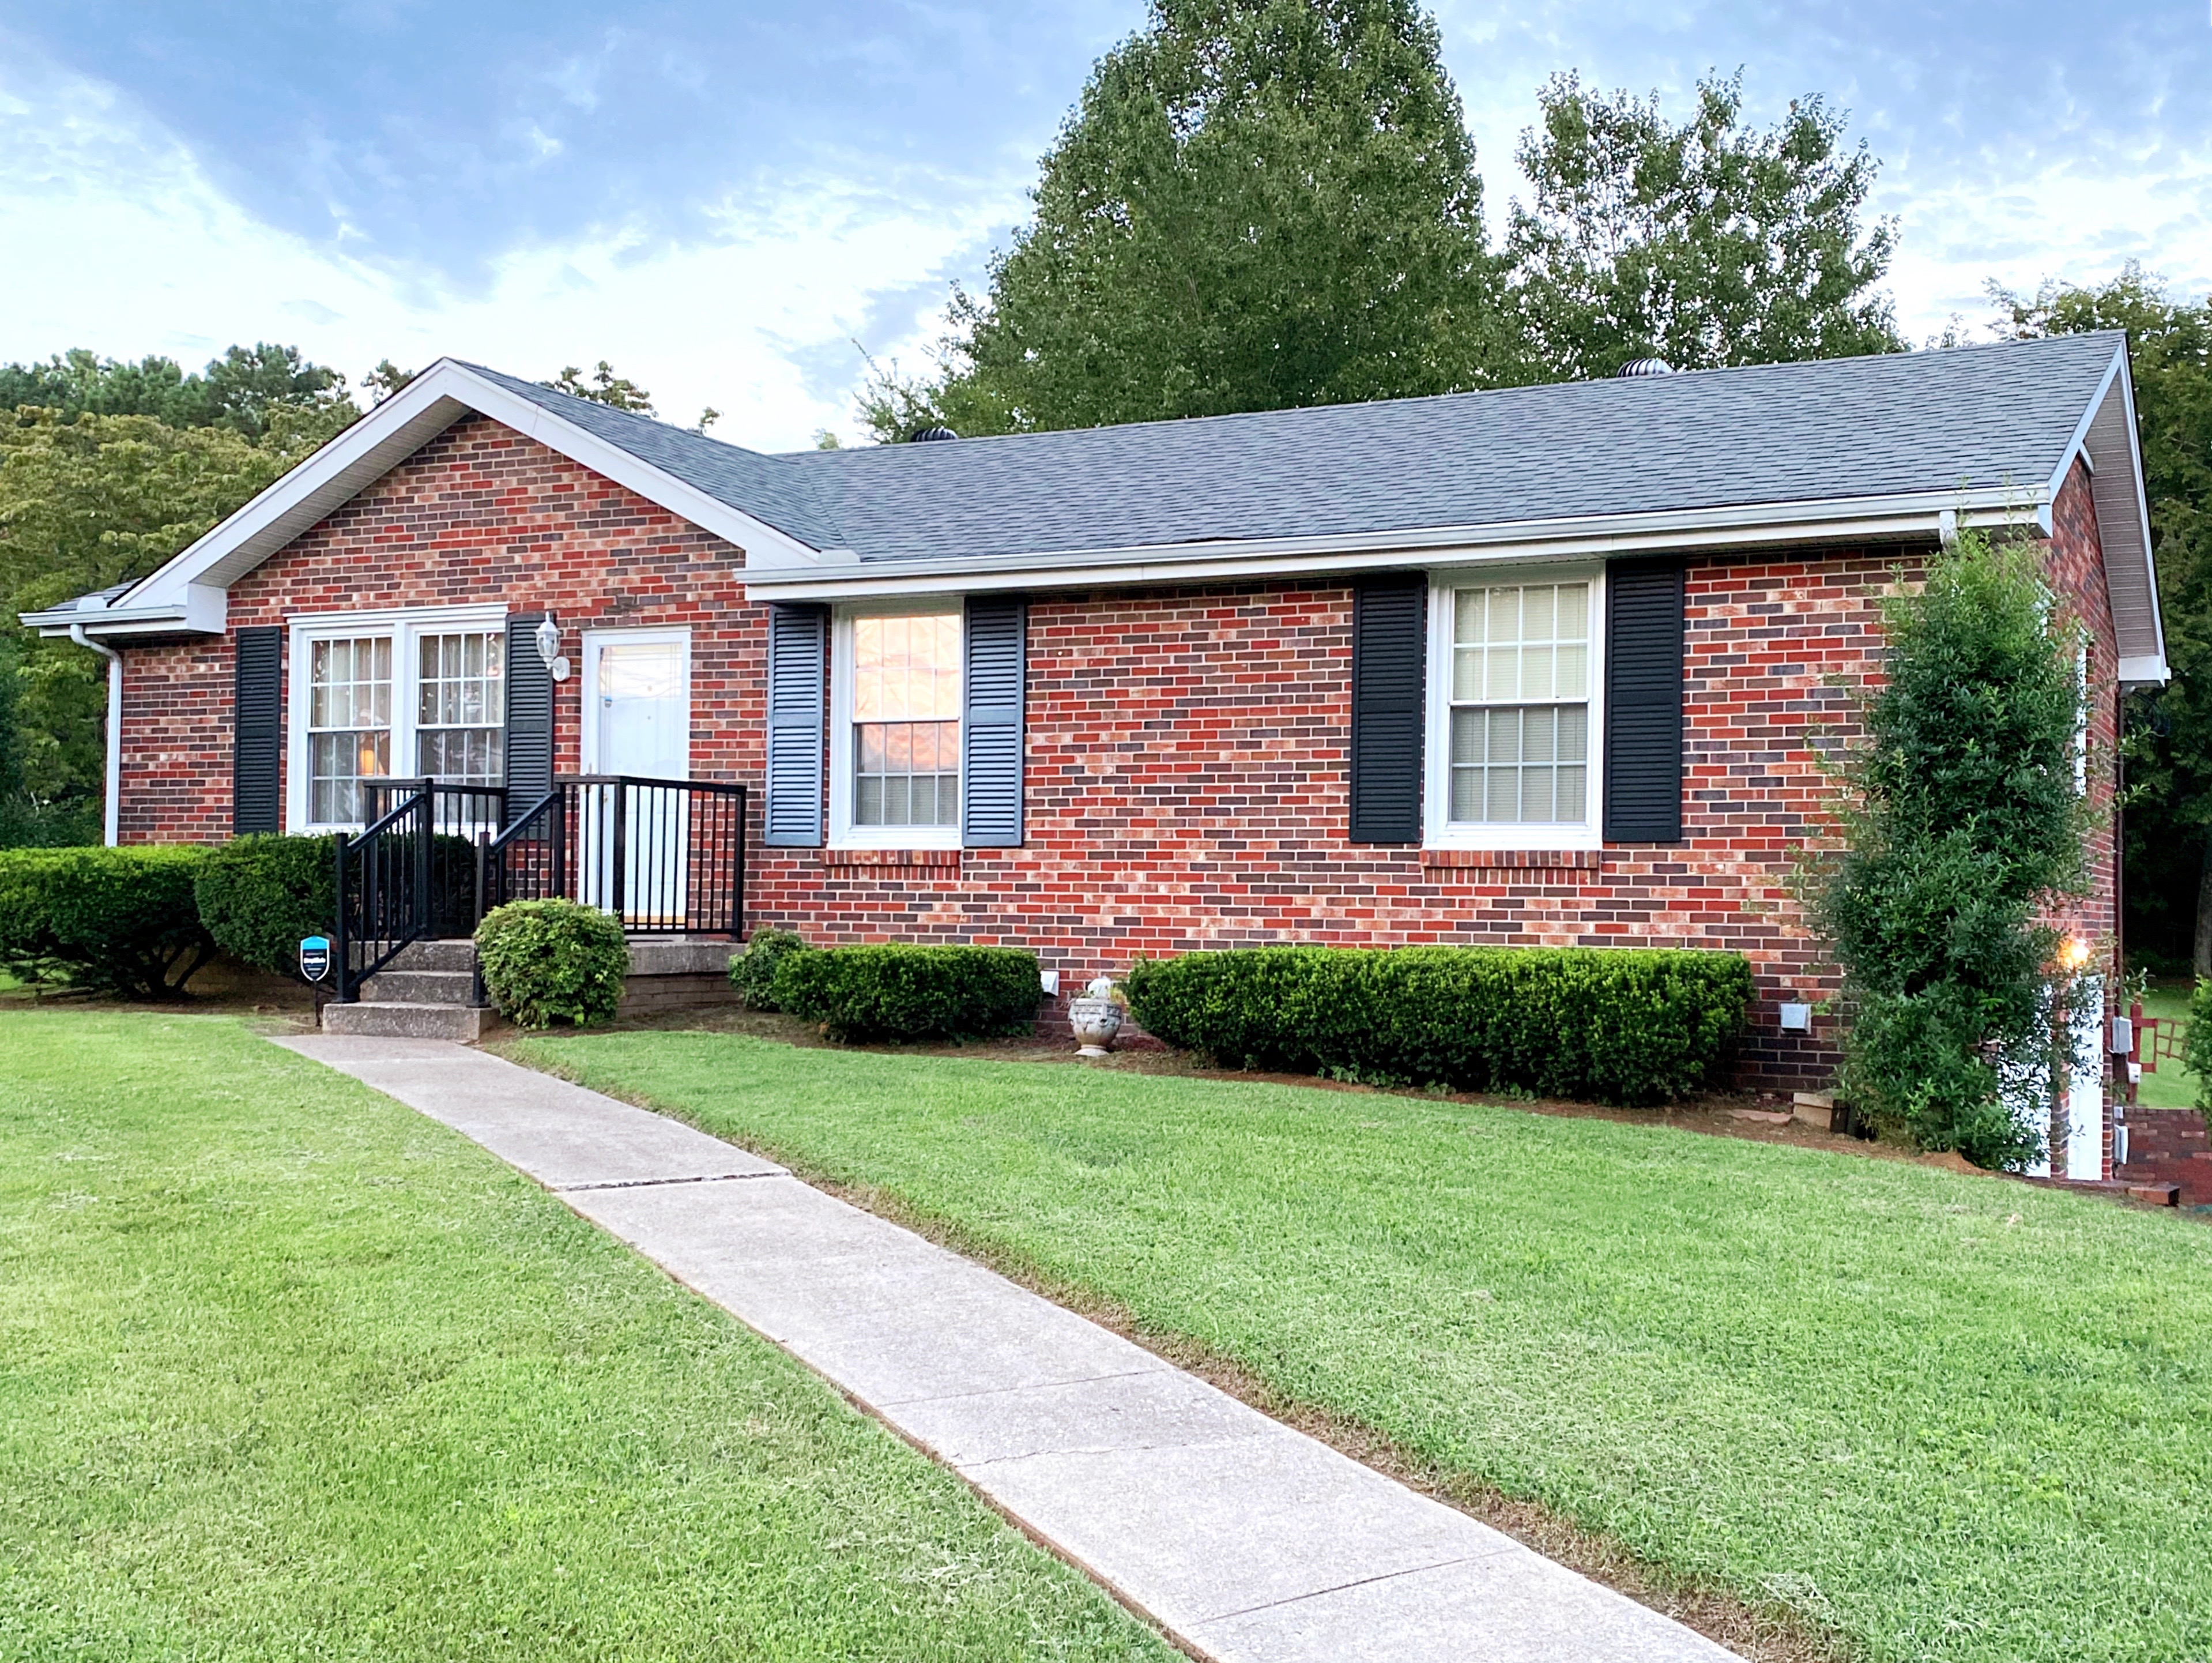 Home for sale zoned for Green Hill High School, Mt. Juliet, TN